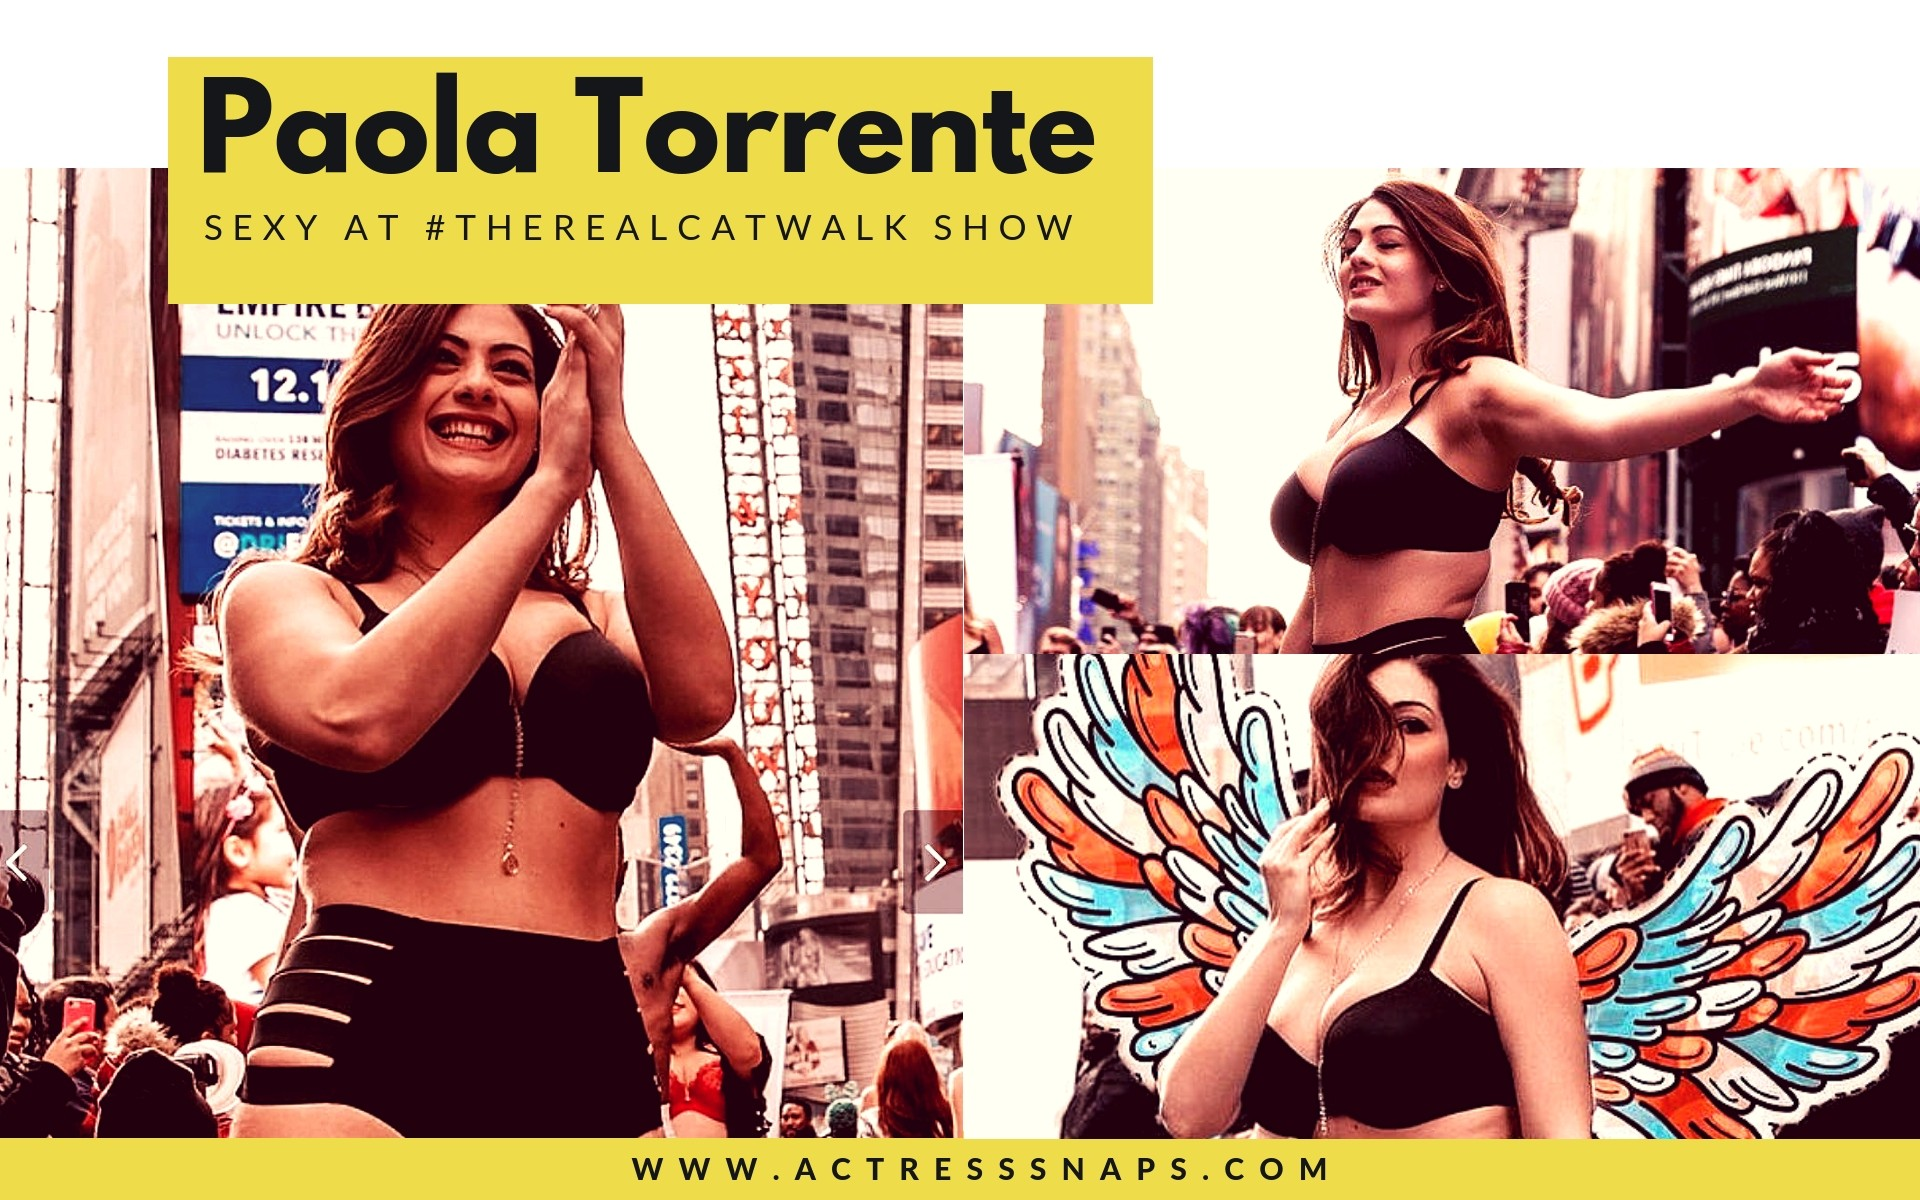 Paola torrente looking absolutely sexy at the show in Times Square